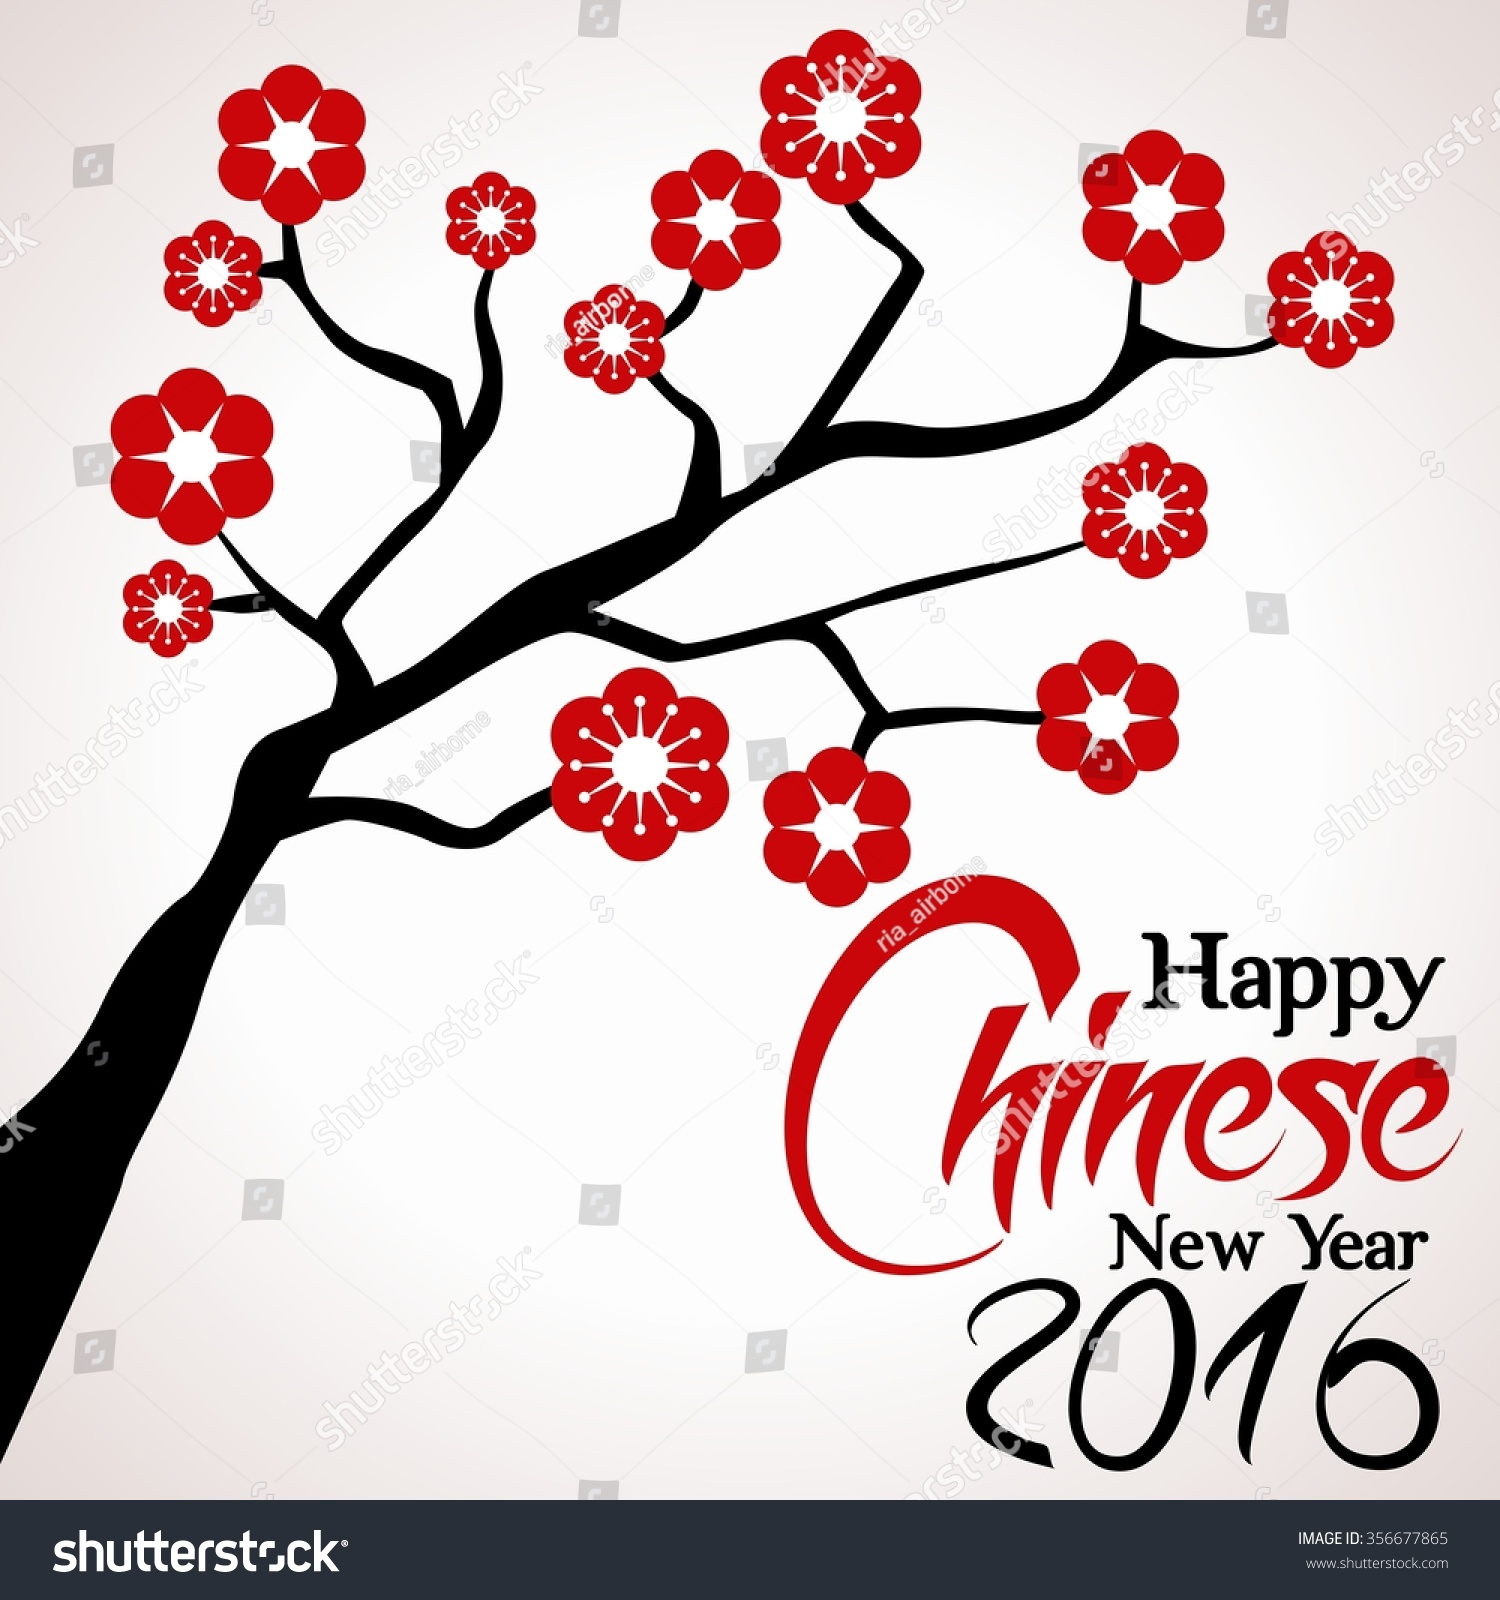 stock vector happy new year banner poster celebration chinese new year year of monkey 356677865 template twitter banner,twitter free download card designs on twitter banner orignal template